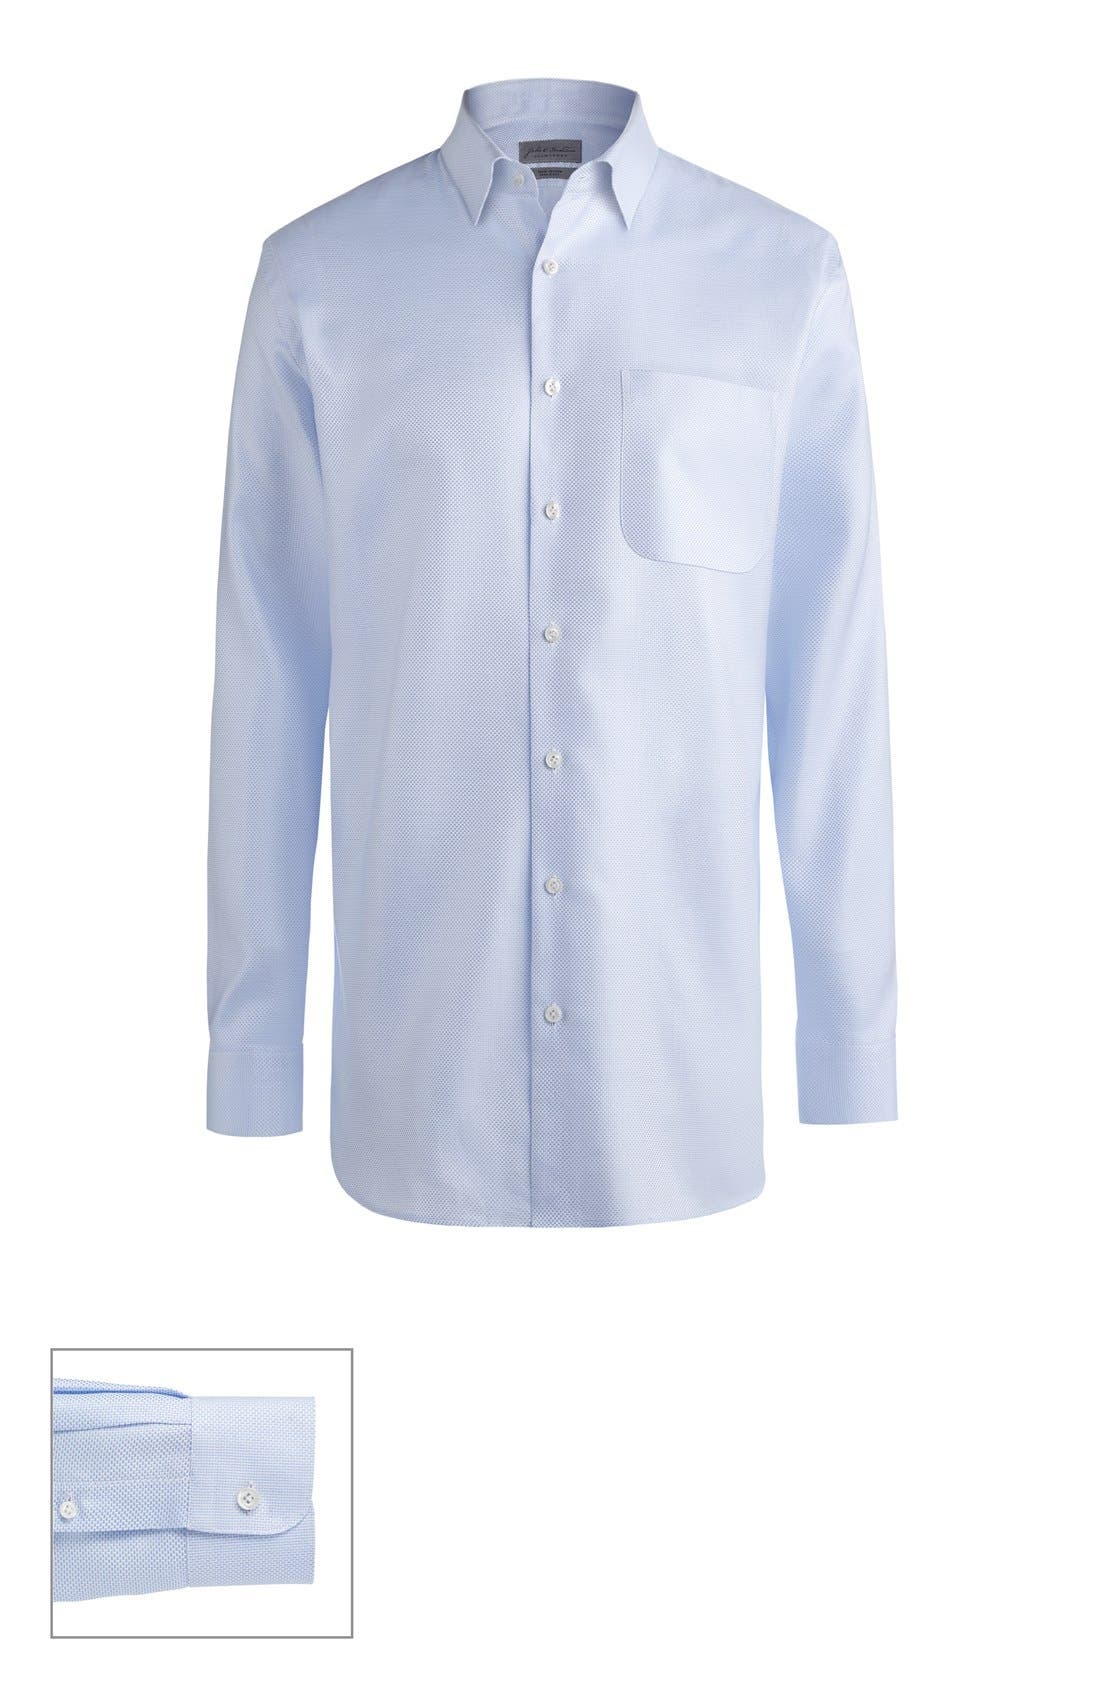 Made to Measure Extra Trim Fit Straight Collar Dobby Dress Shirt,                         Main,                         color, Blue Micro Basket Weave